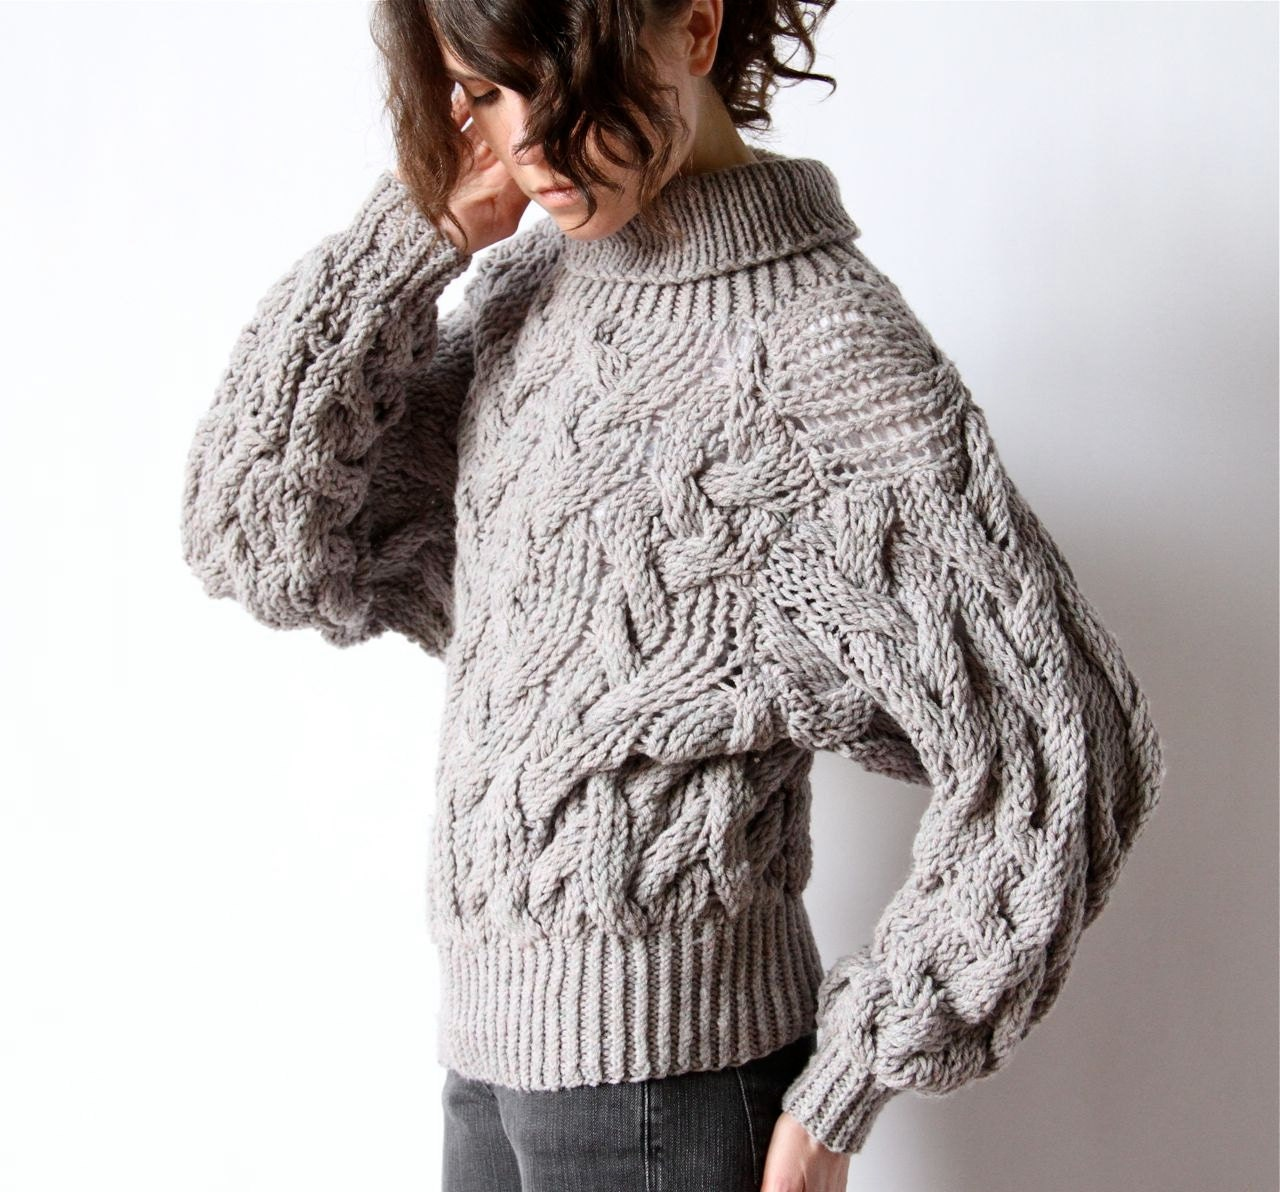 Best Knitting Stitches For Chunky Wool Ipaafo For